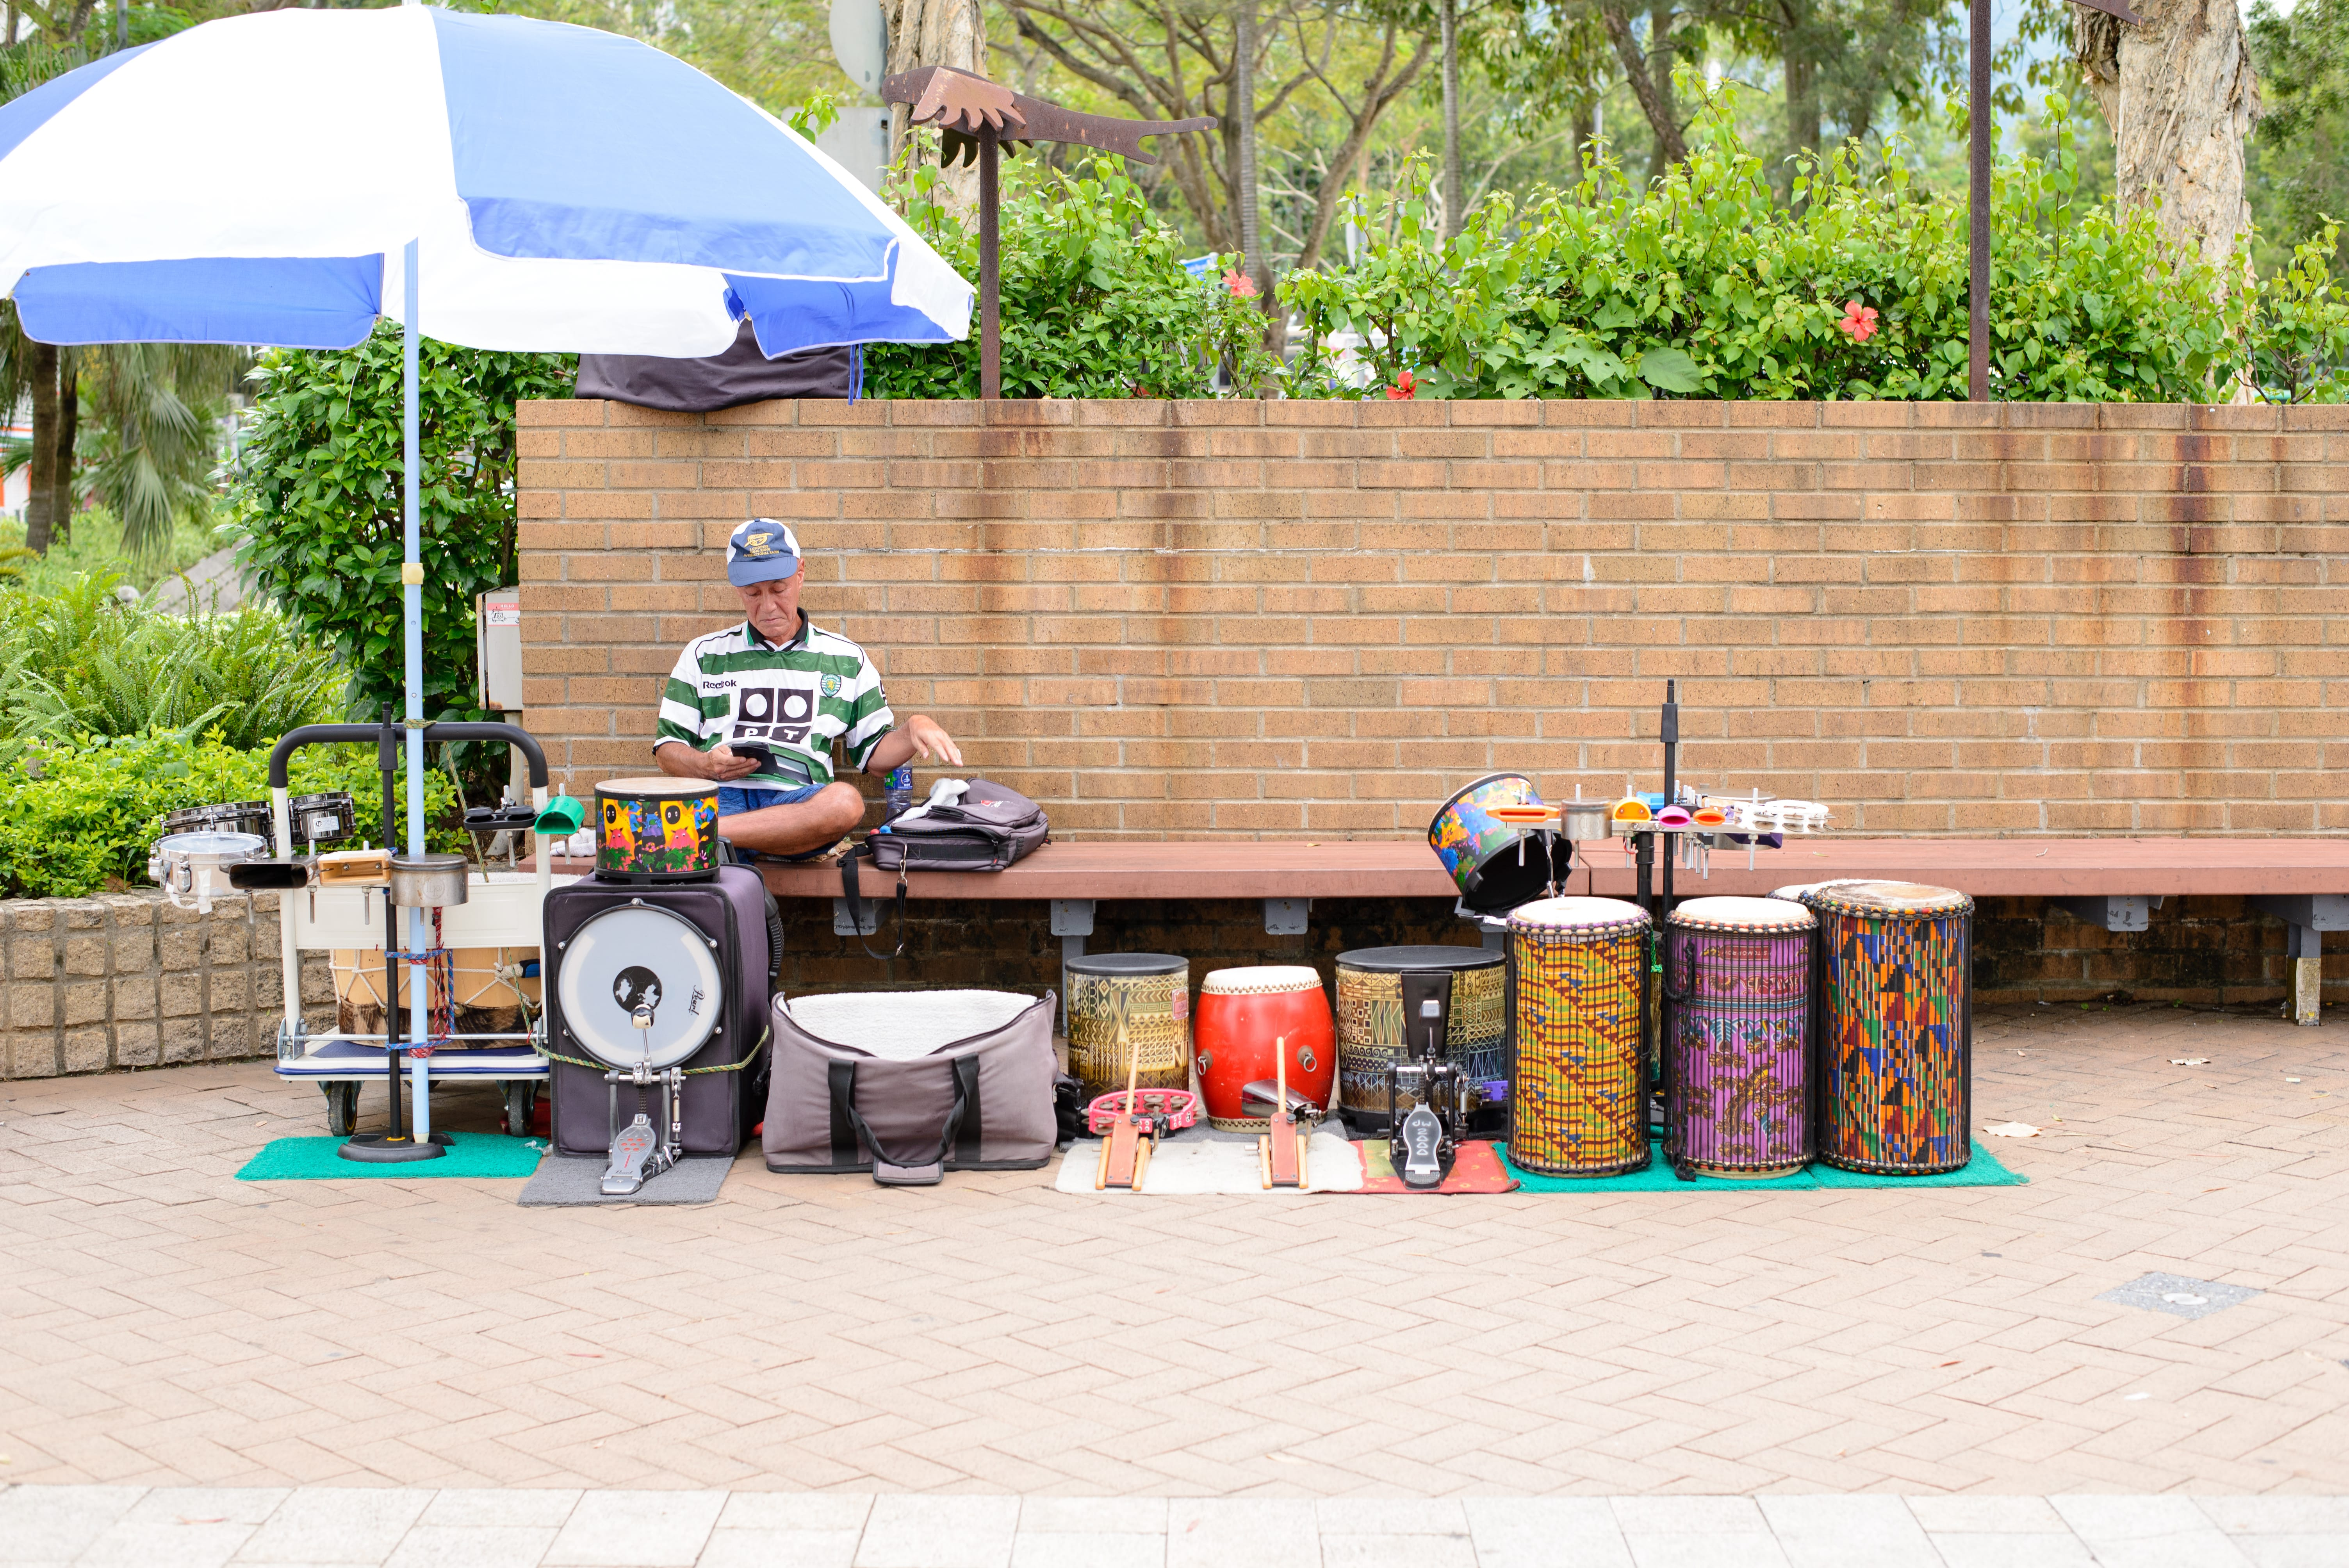 Full precussion set for kids to play